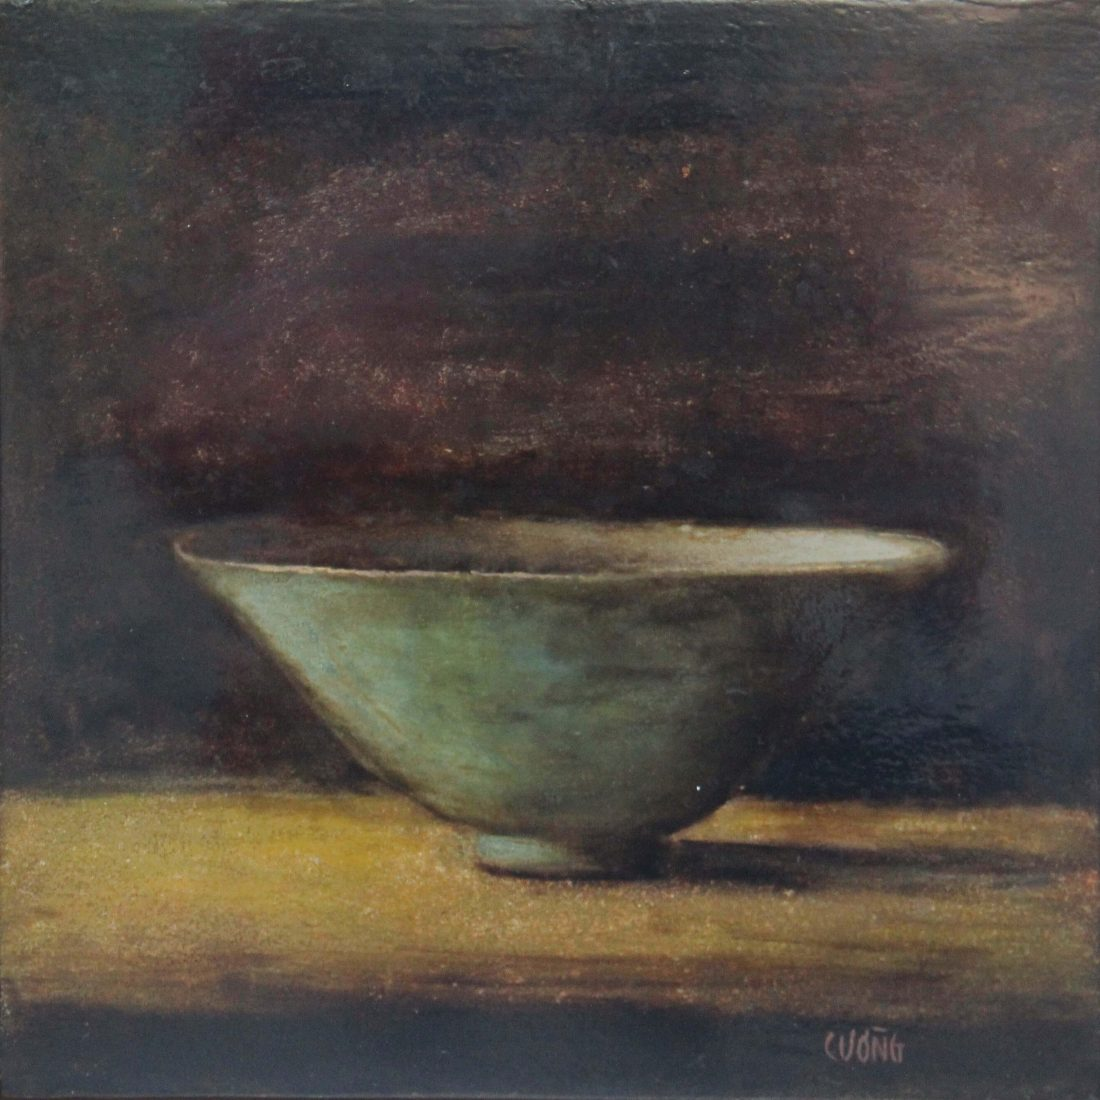 Old Bowl 14, Vietnam Artworks